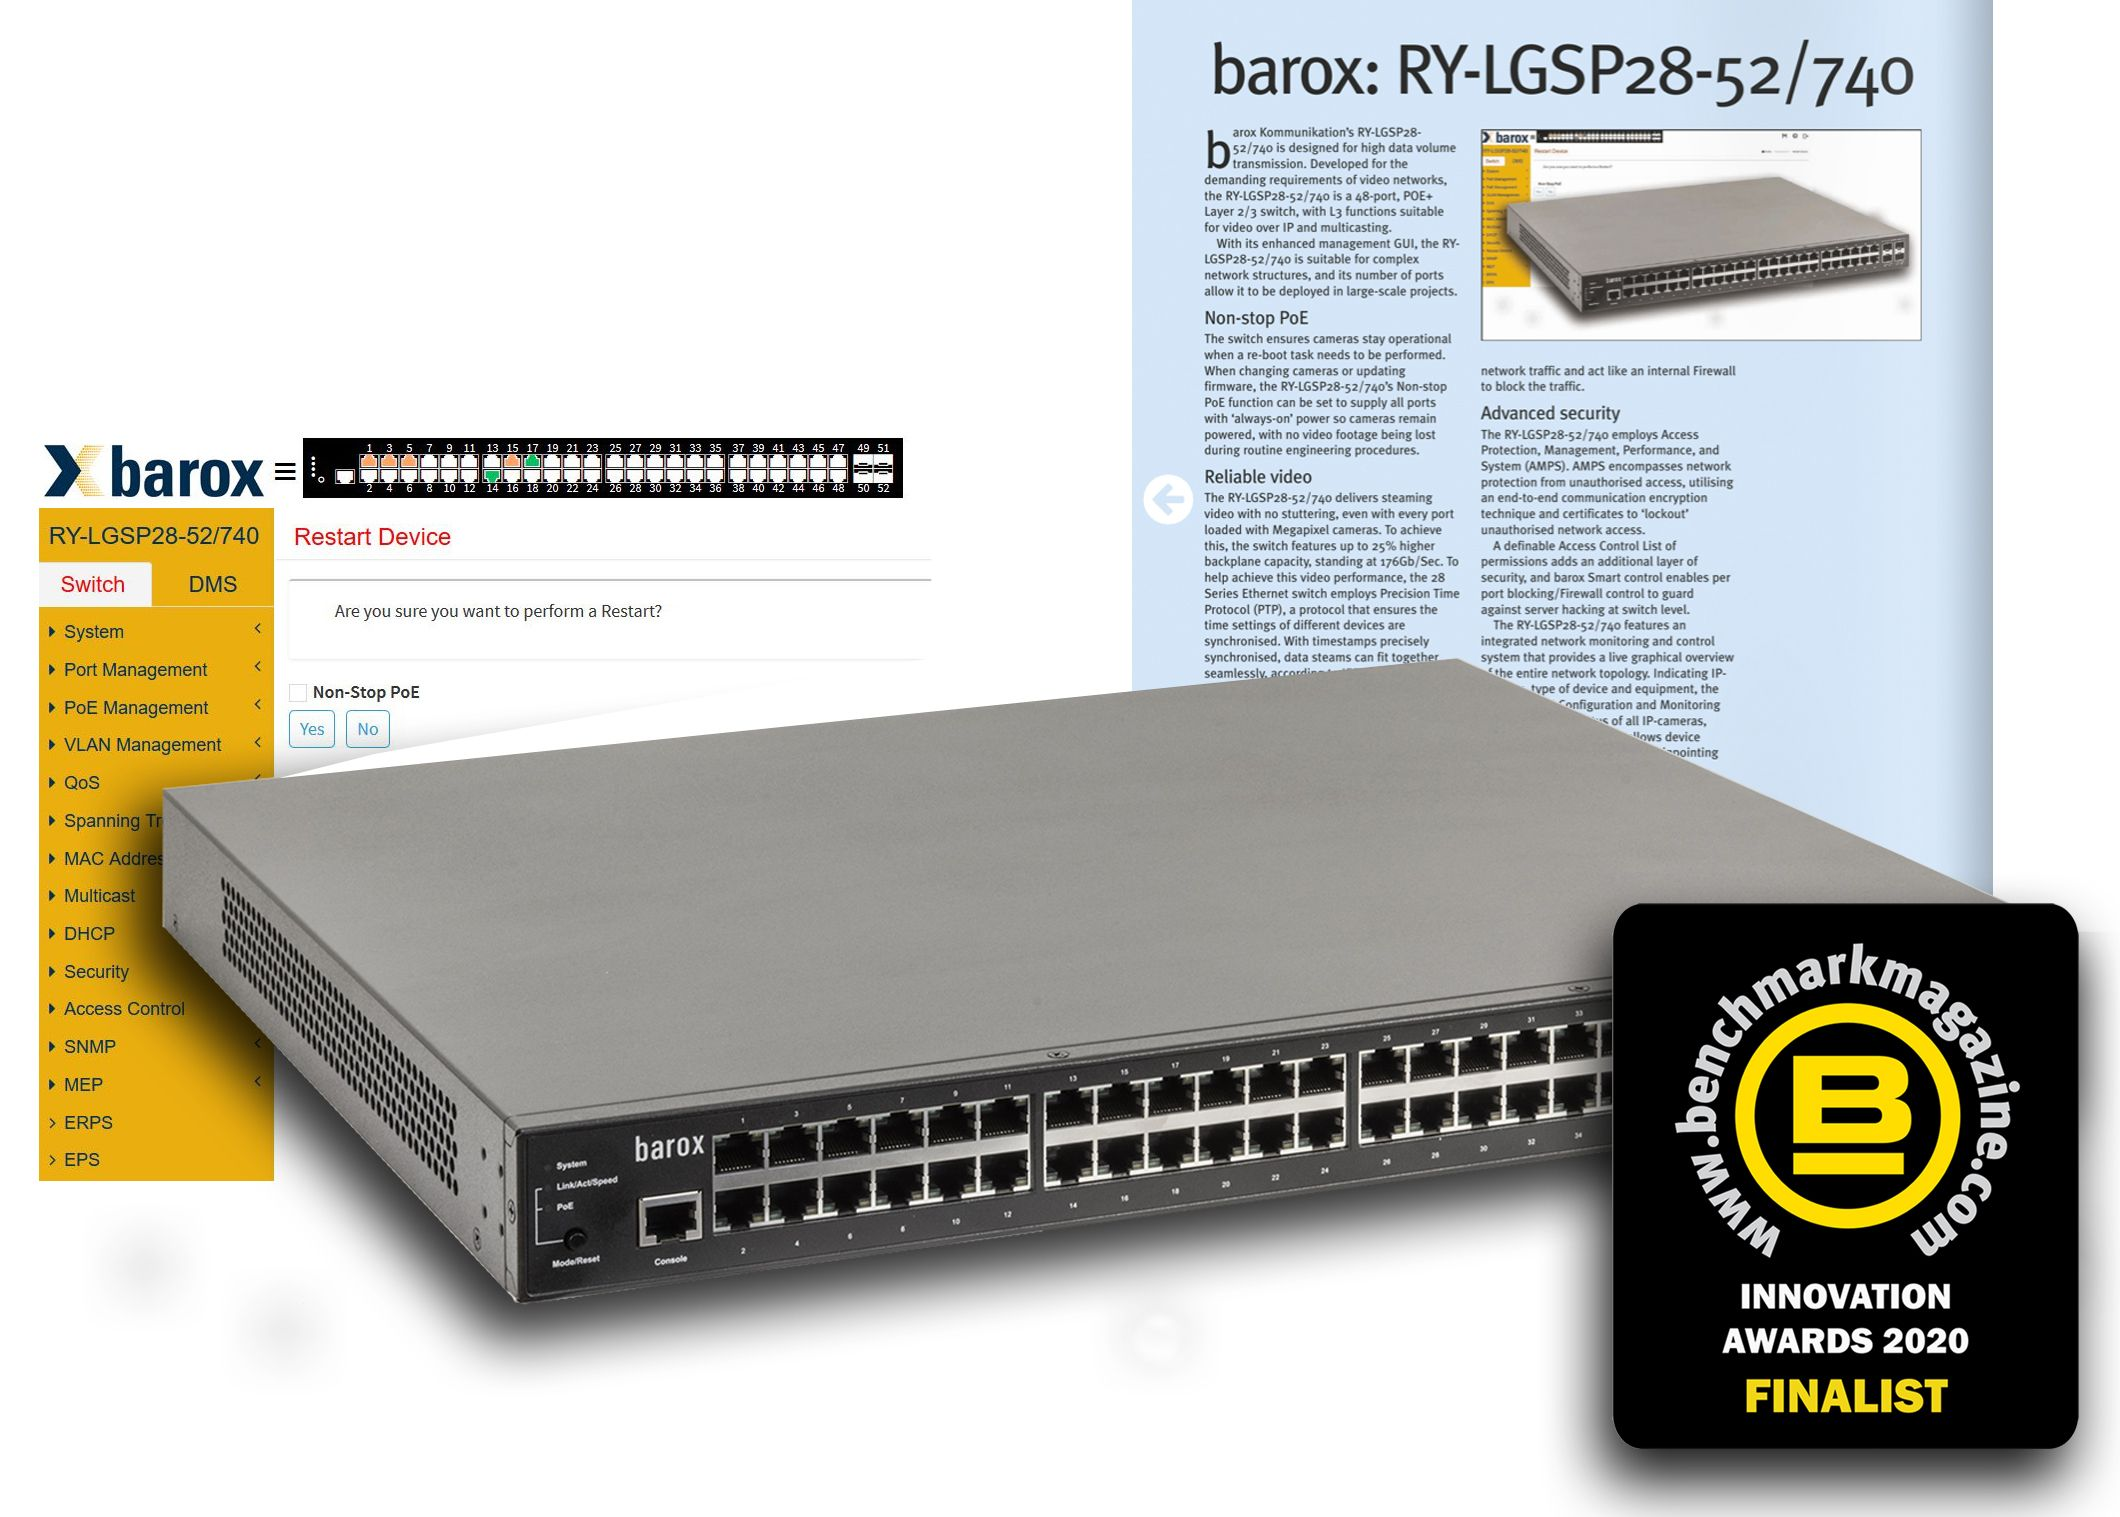 barox - Switches made for Video - finalist @ Benchmark Innovation Awards 2020